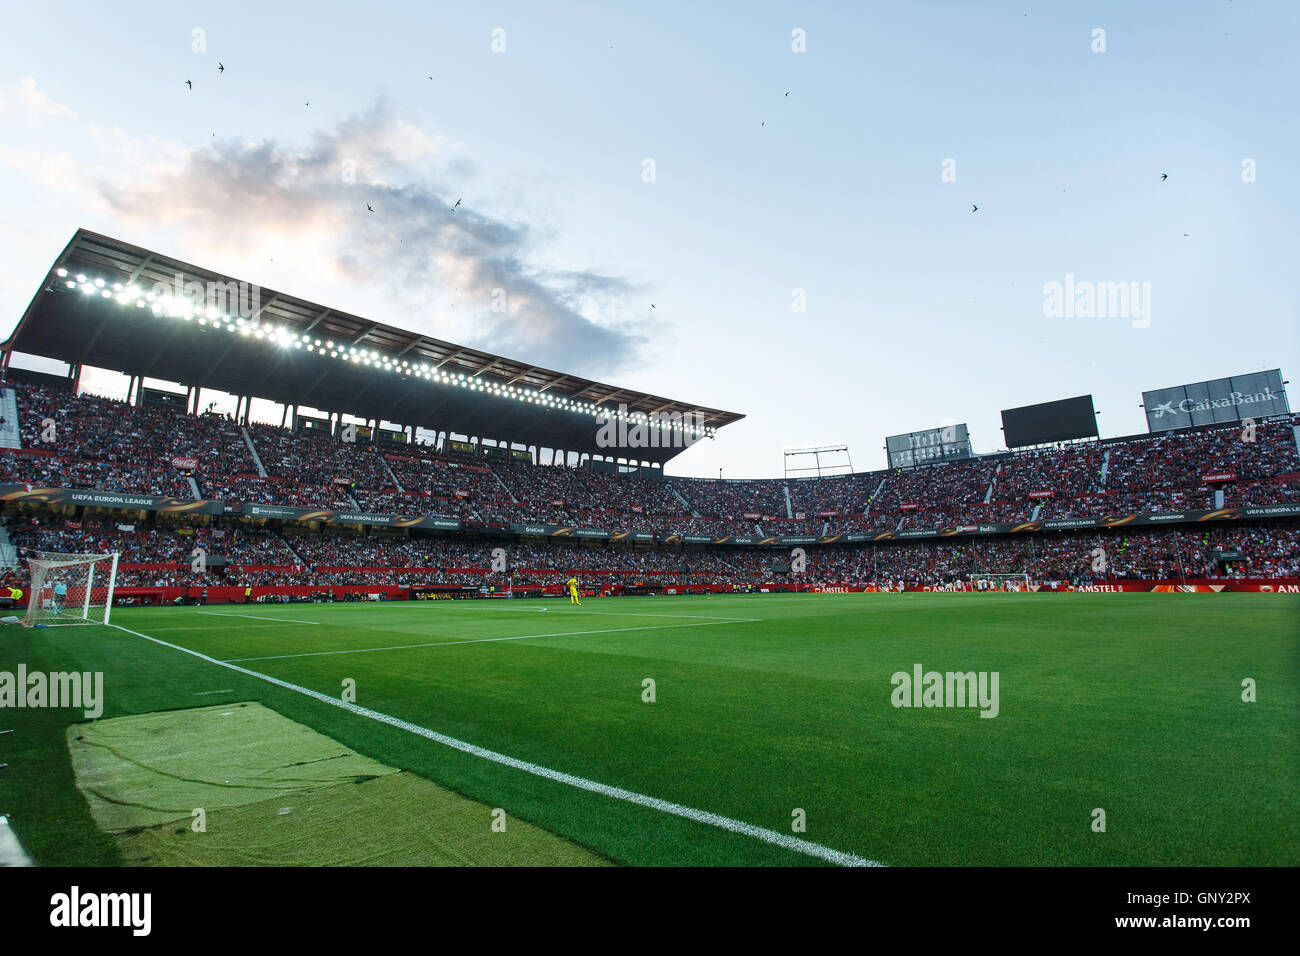 SEVILLA, SPAIN - MAY 5: panoramic view of the stadium from the corner of the football ptich during the UEFA Europa - Stock Image